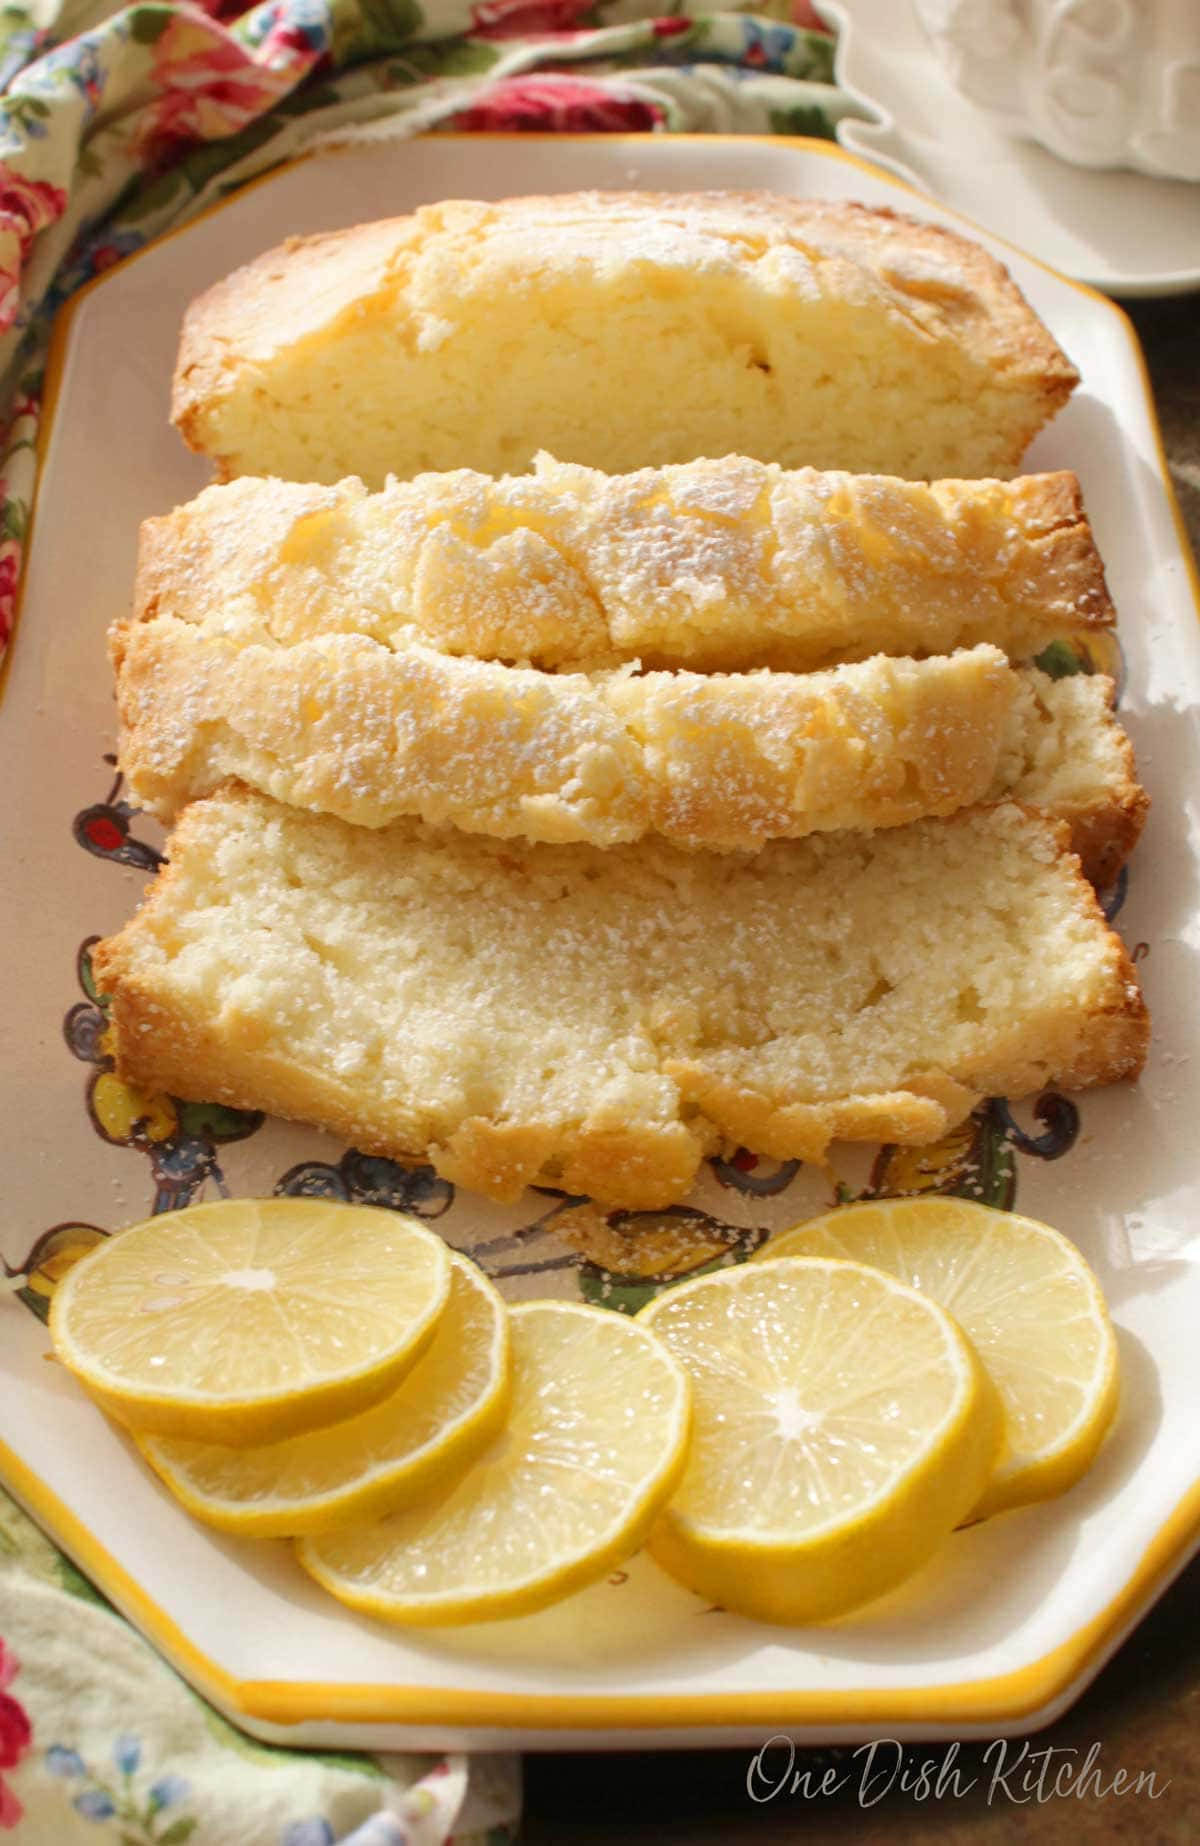 Four slices of pound cake dusted with powdered sugar on a plate with five decorative lemon wheels